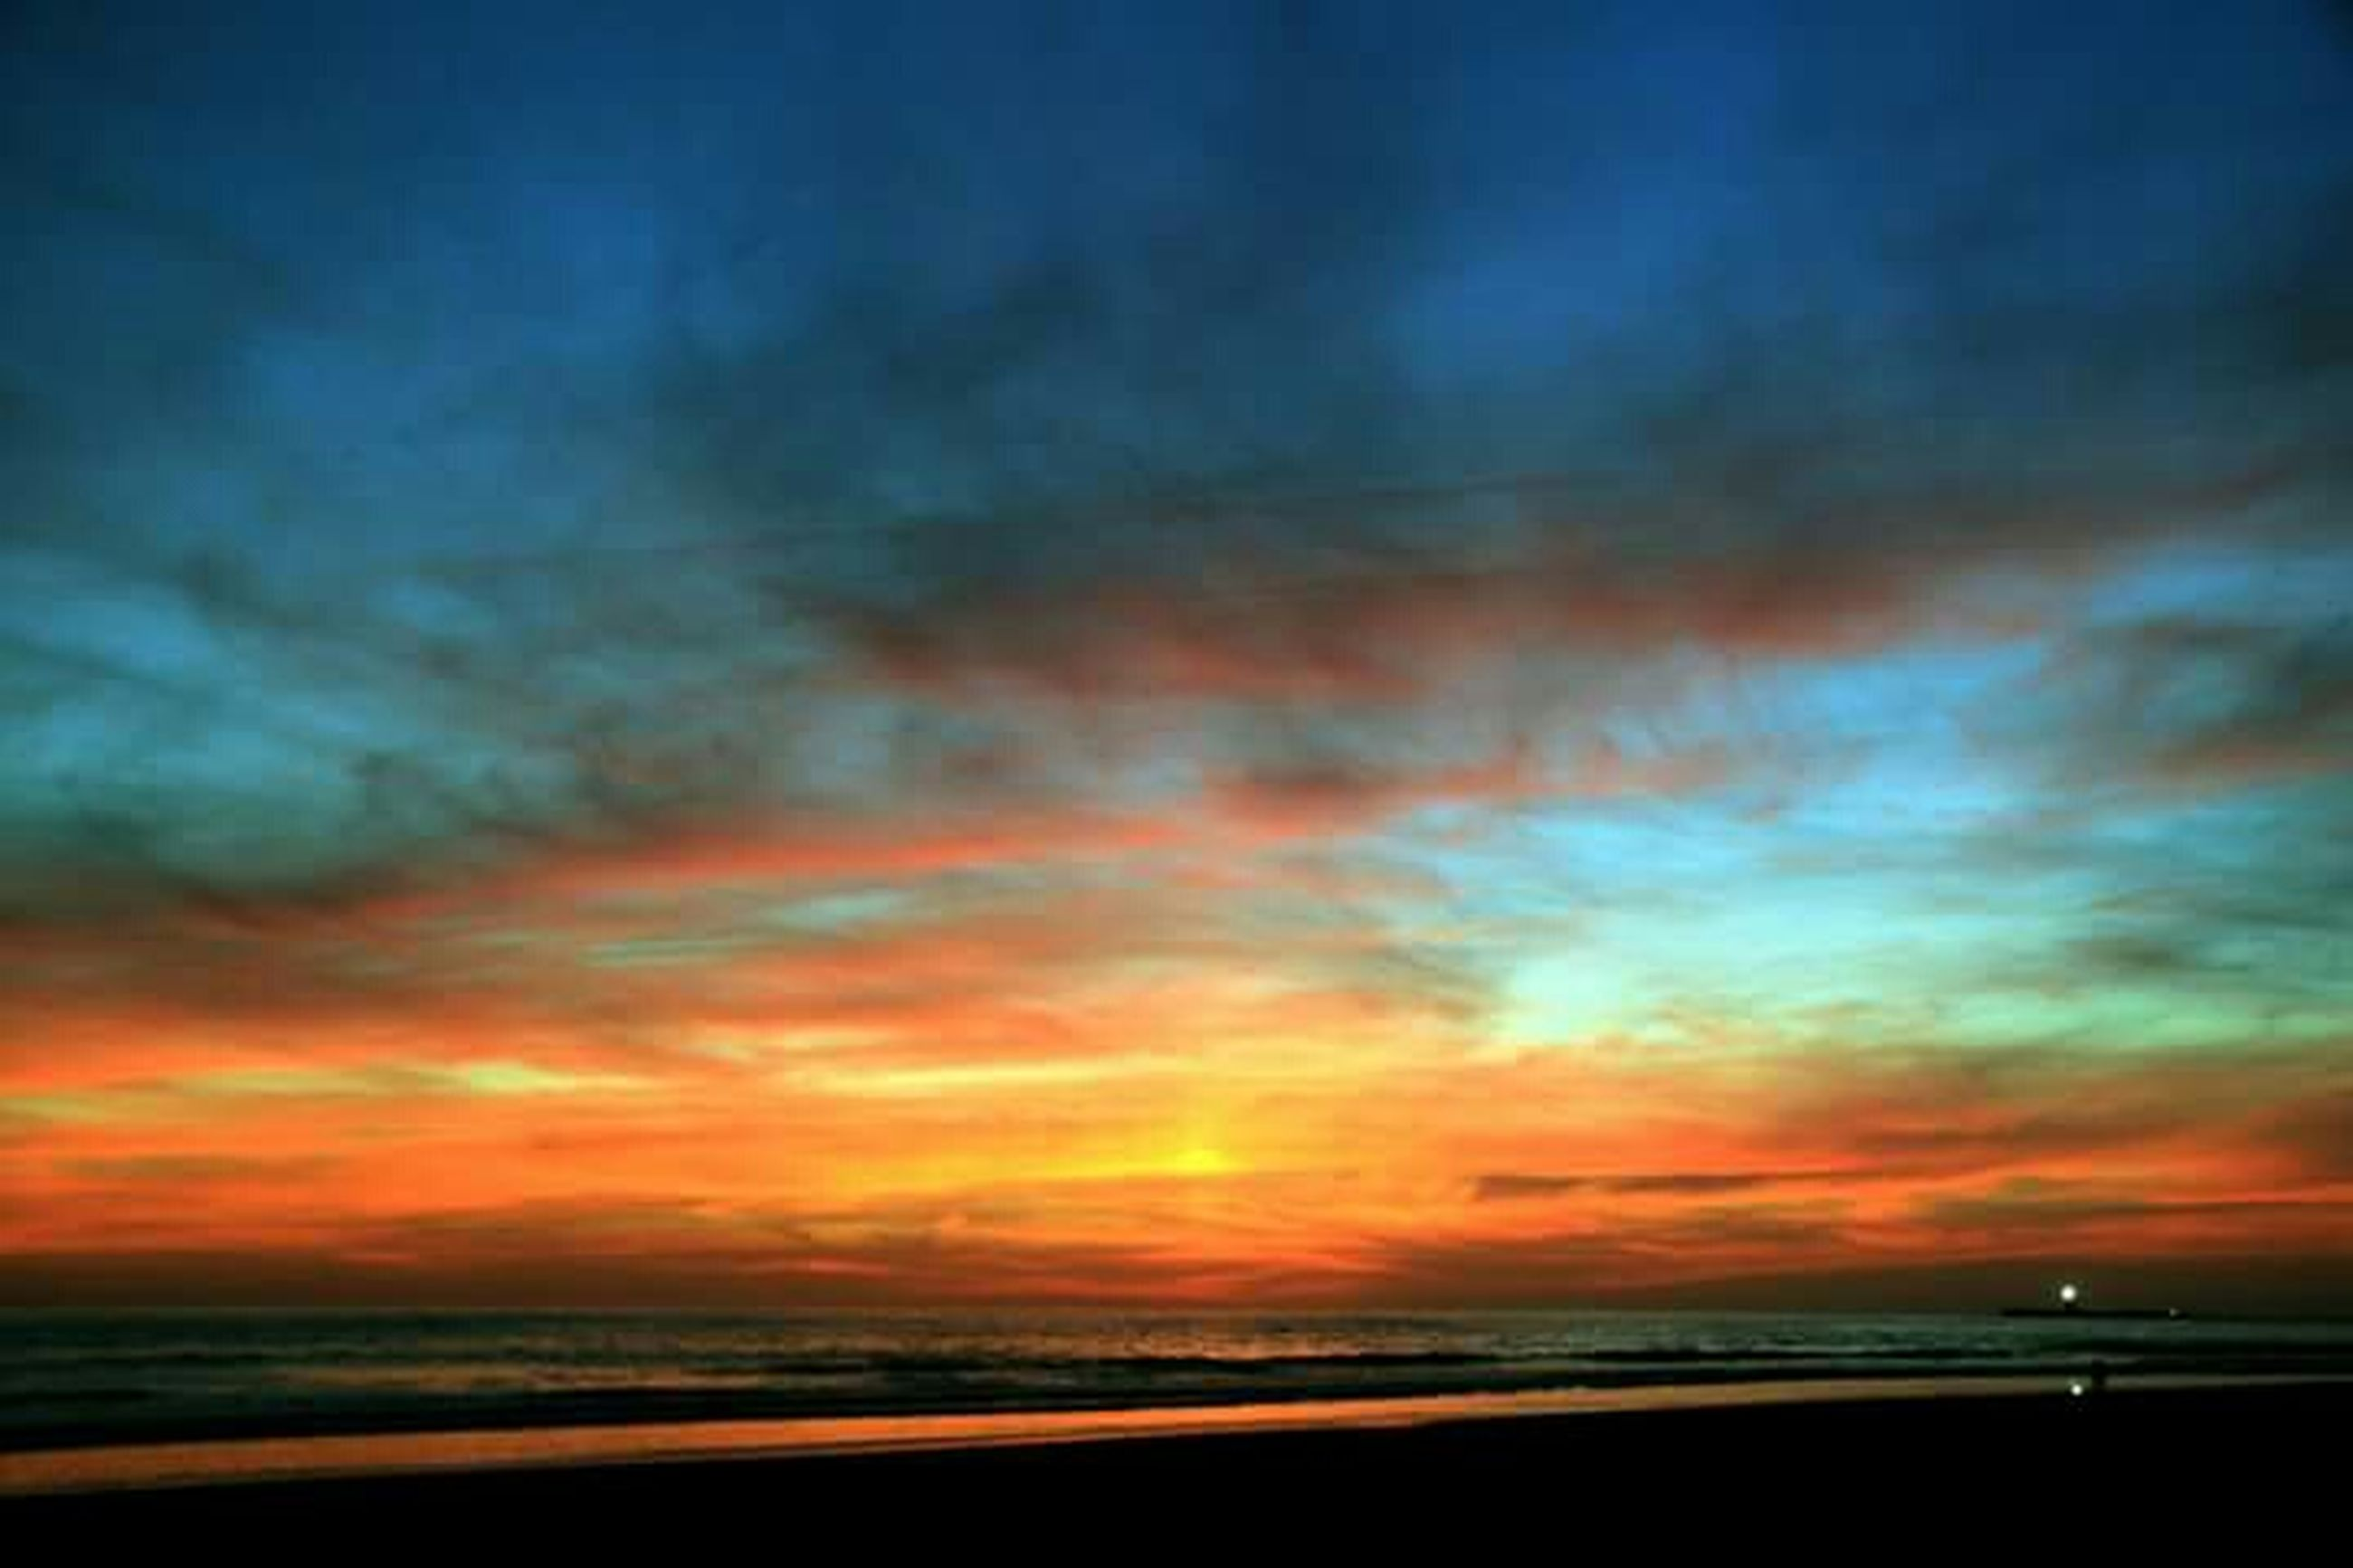 sea, horizon over water, beach, sunset, scenics, water, tranquil scene, beauty in nature, sky, tranquility, shore, idyllic, cloud - sky, nature, orange color, dramatic sky, cloud, sand, cloudy, dusk